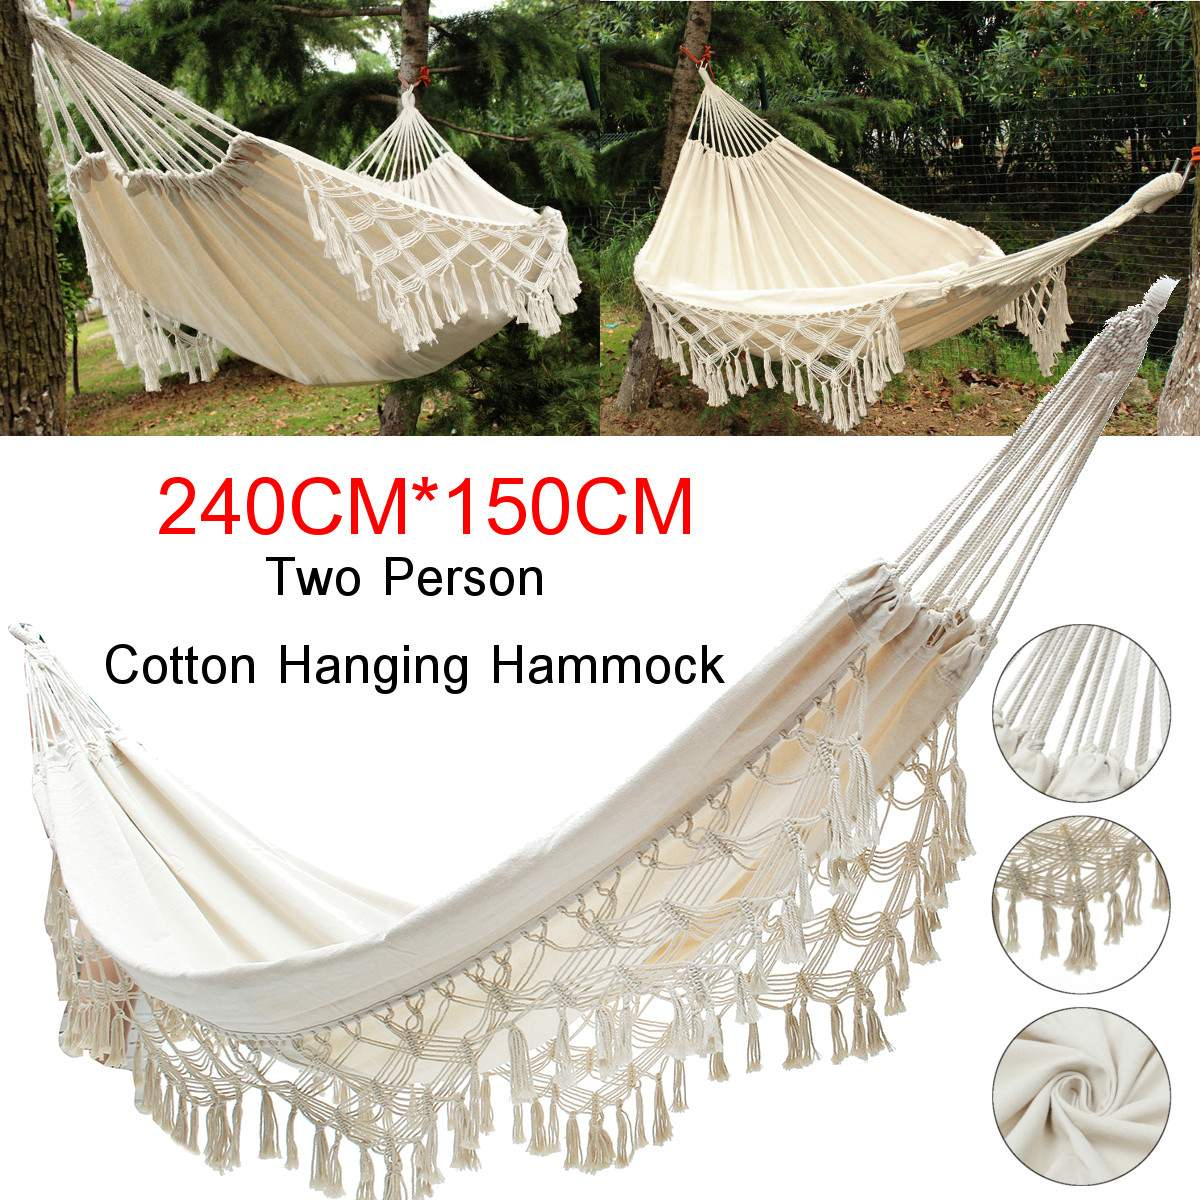 Home Garden Rope Hammock Hanging Swing Bed Outdoor Porch Patio Yard Camping 2 Person New Hanky Cz